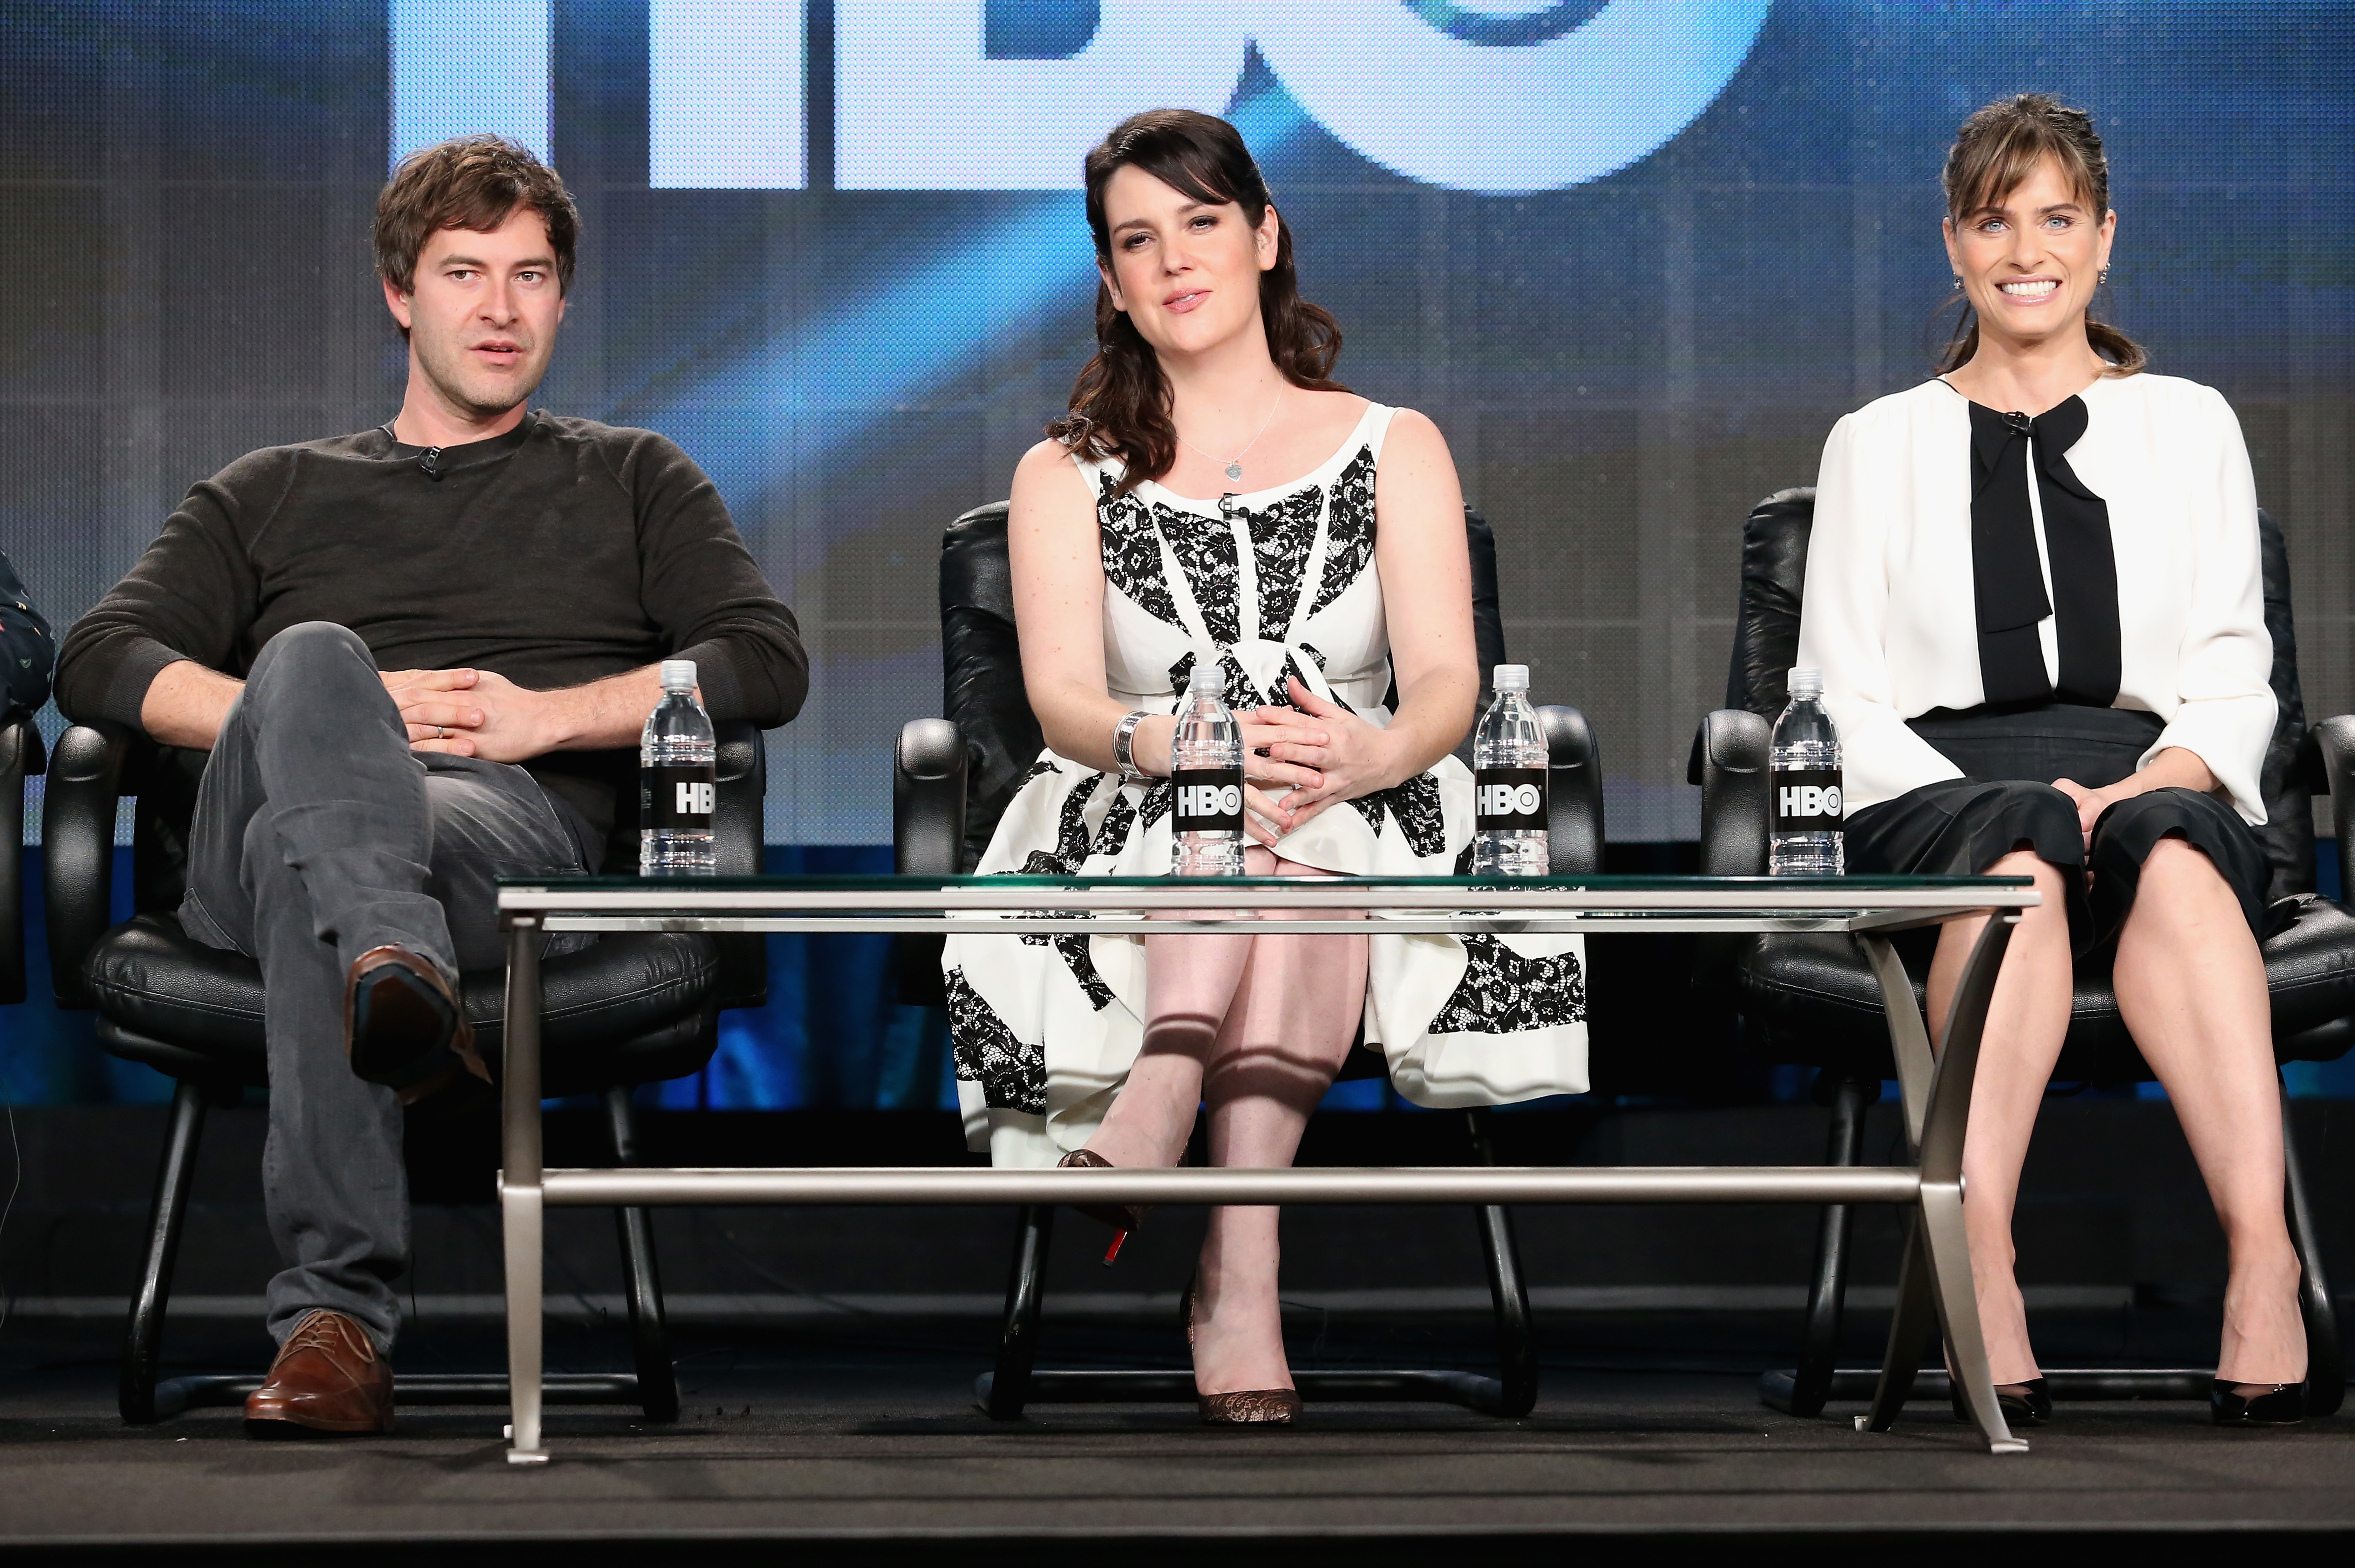 (L-R) Writer/Director Mark Duplass, and actors Melanie Lynskey and Amanda Peet, speak onstage during the 'Togetherness' panel at the HBO portion of the 2015 Winter Television Critics Association press tour at the Langham Hotel on January 8, 2015 in Pasadena, California.